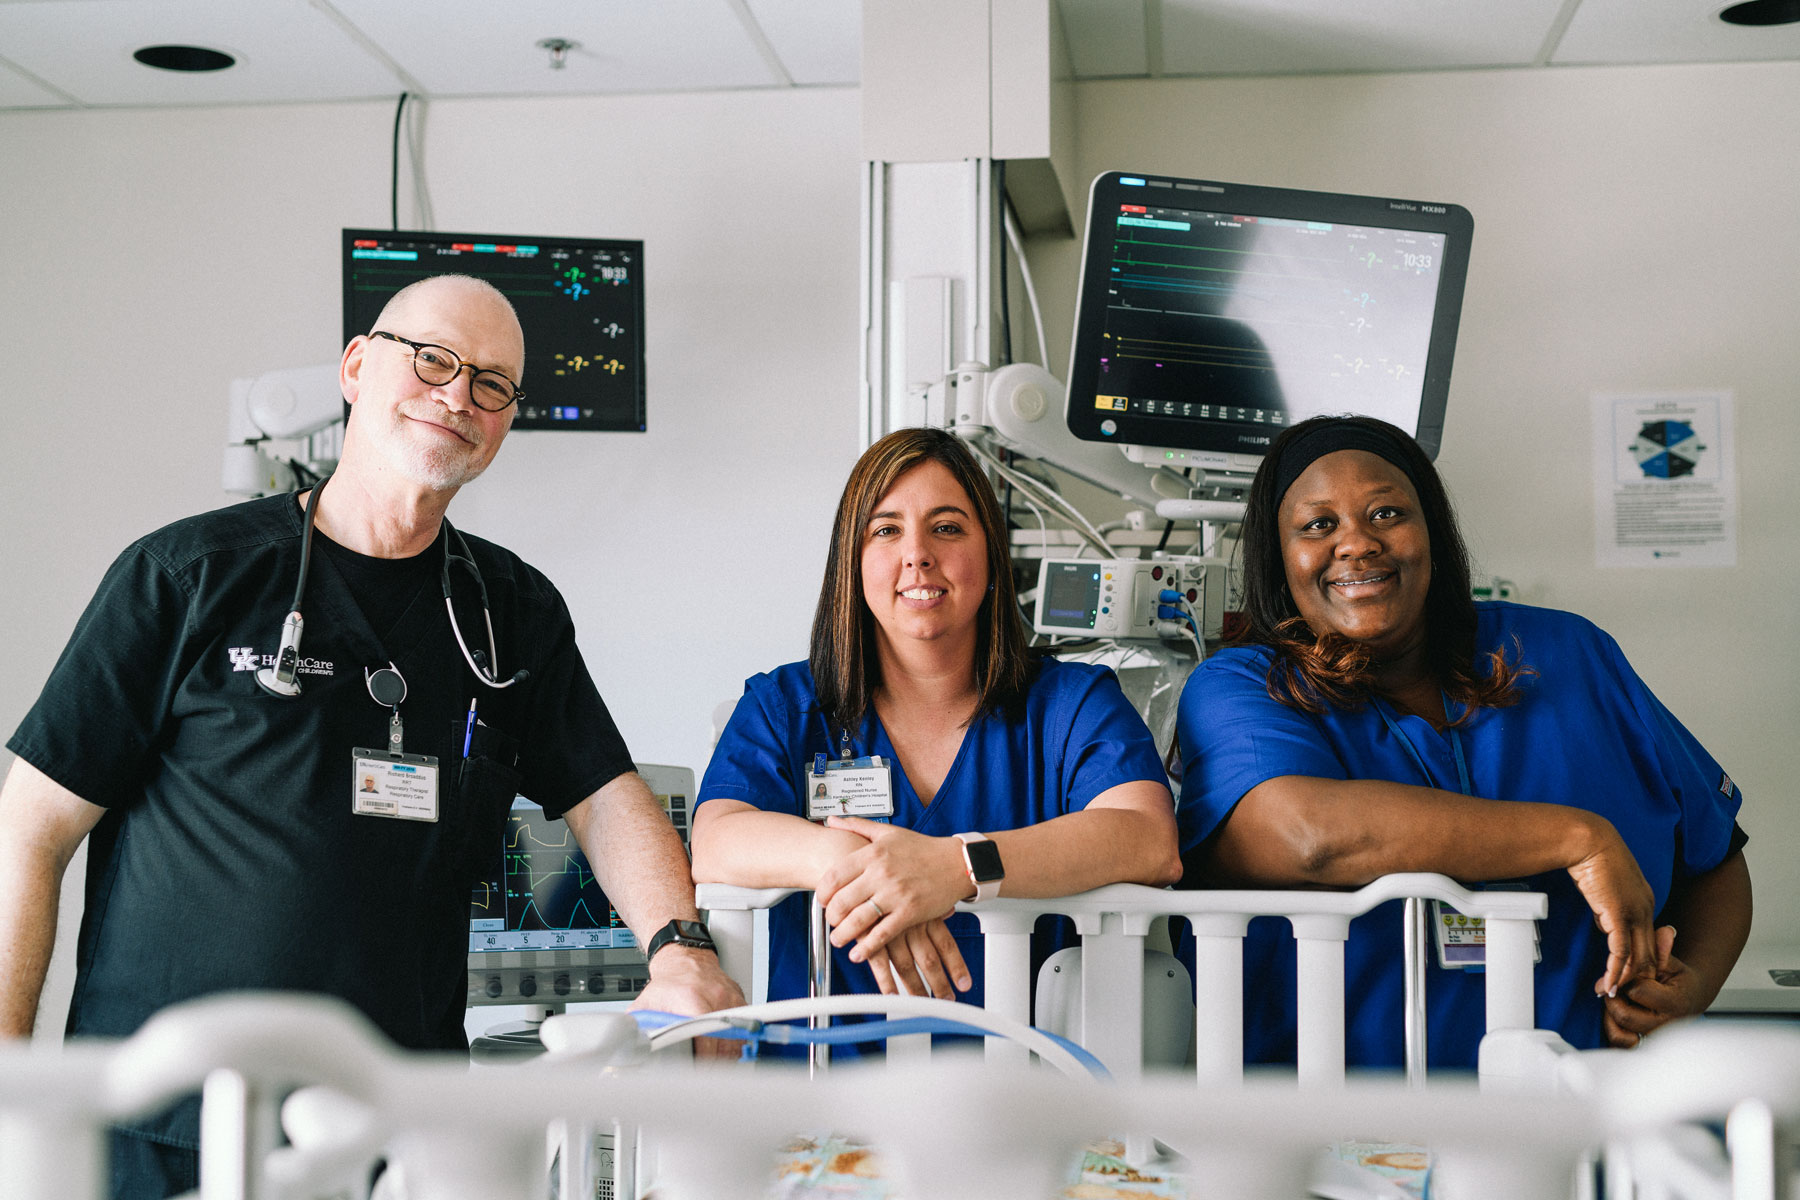 Respiratory therapist Richard Broaddus and PICU nurses Ashley Kenley and Trinaye Pierson take a group photo in Jade's hospital room.